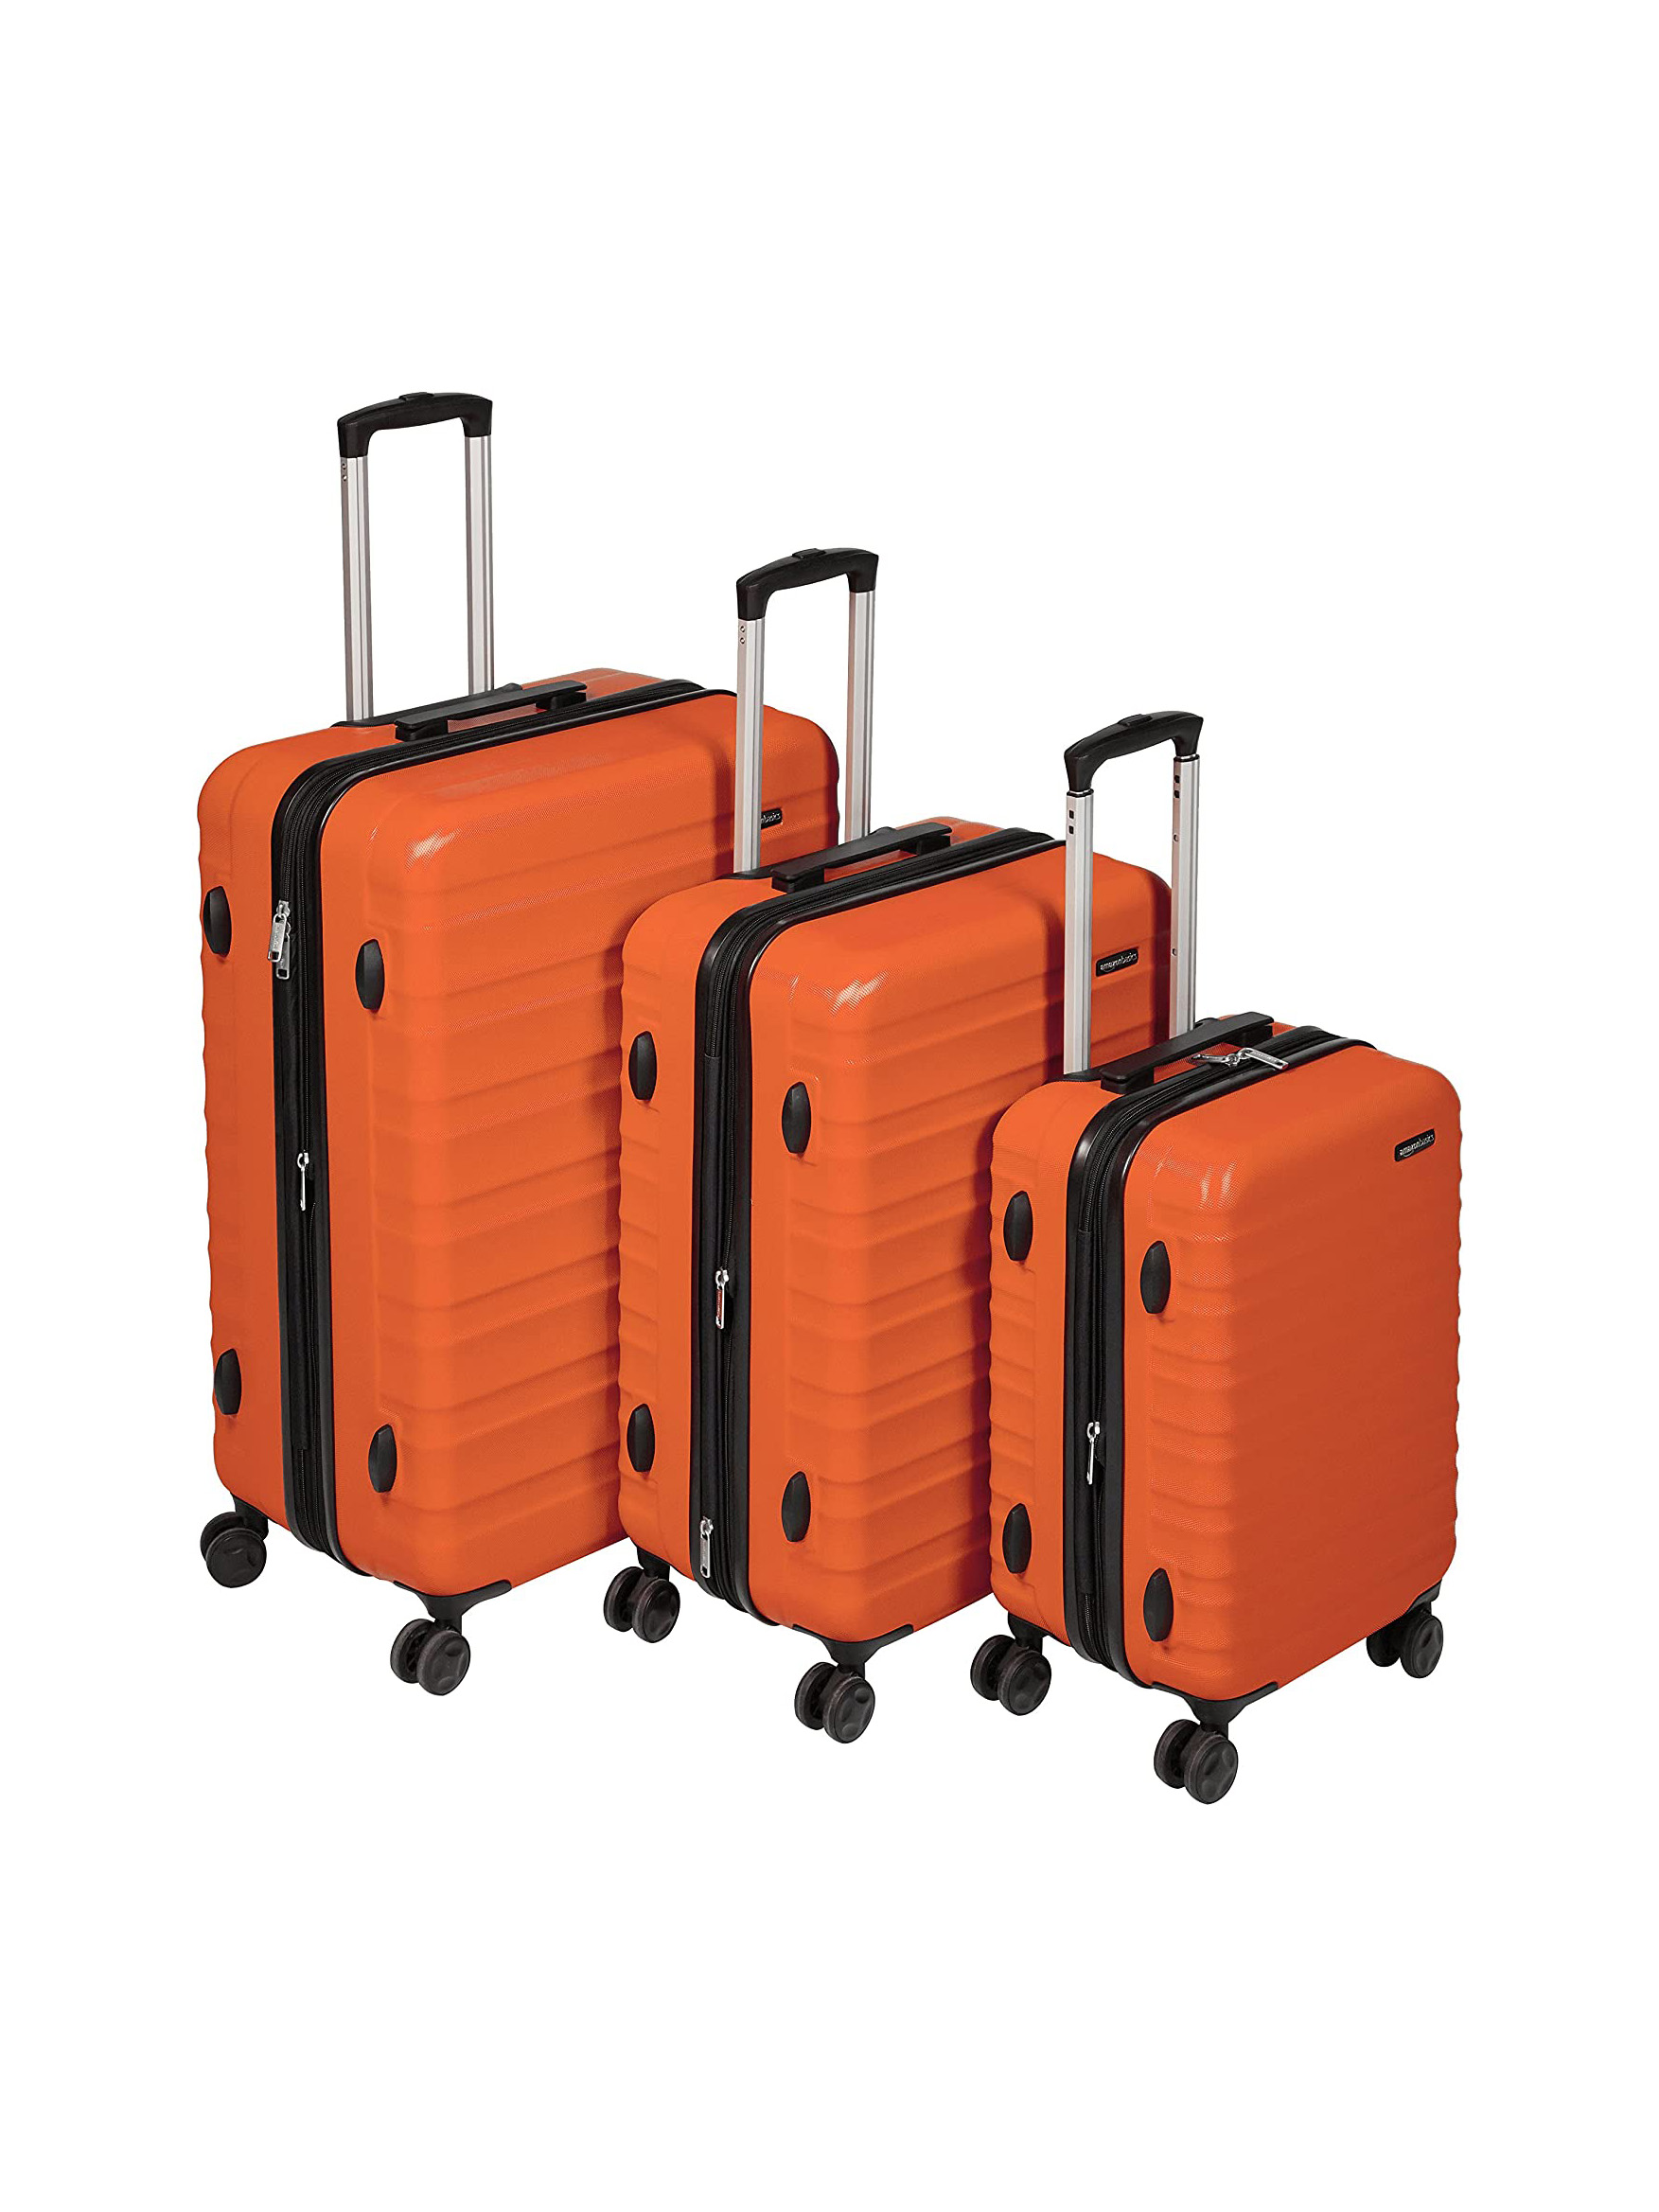 Best Places to Buy Luggage Online - Amazon